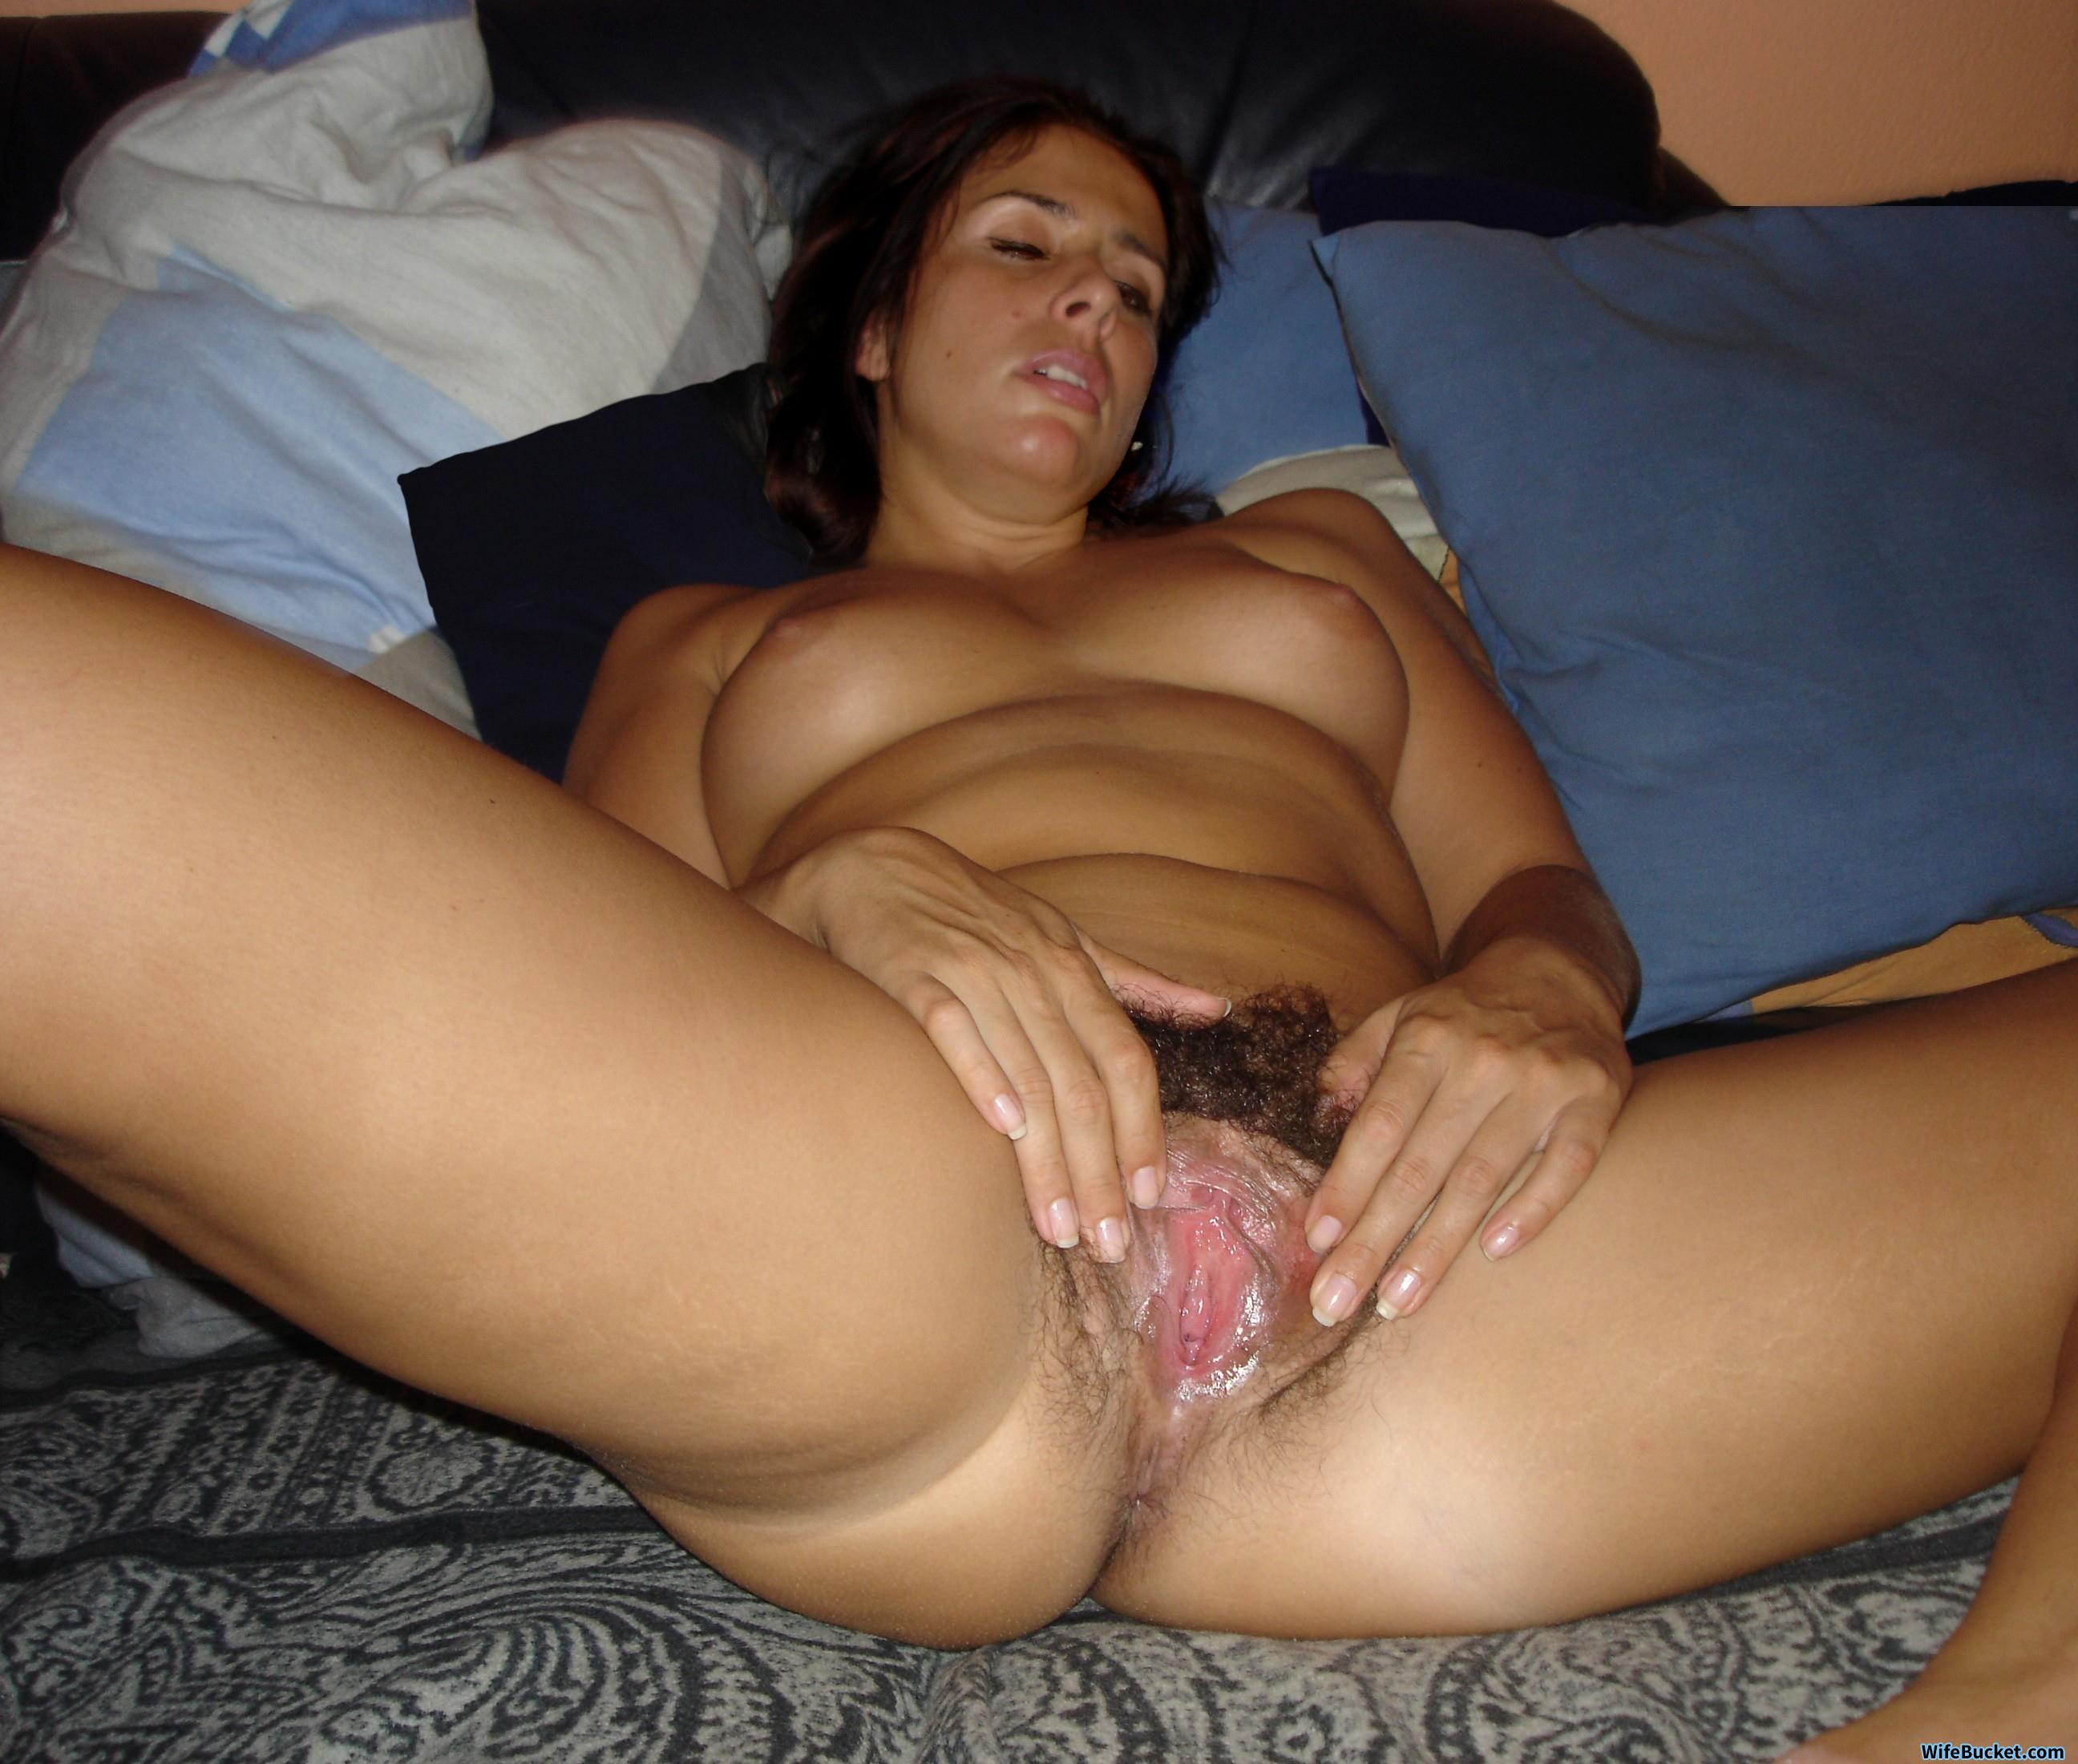 wife spread that pussy